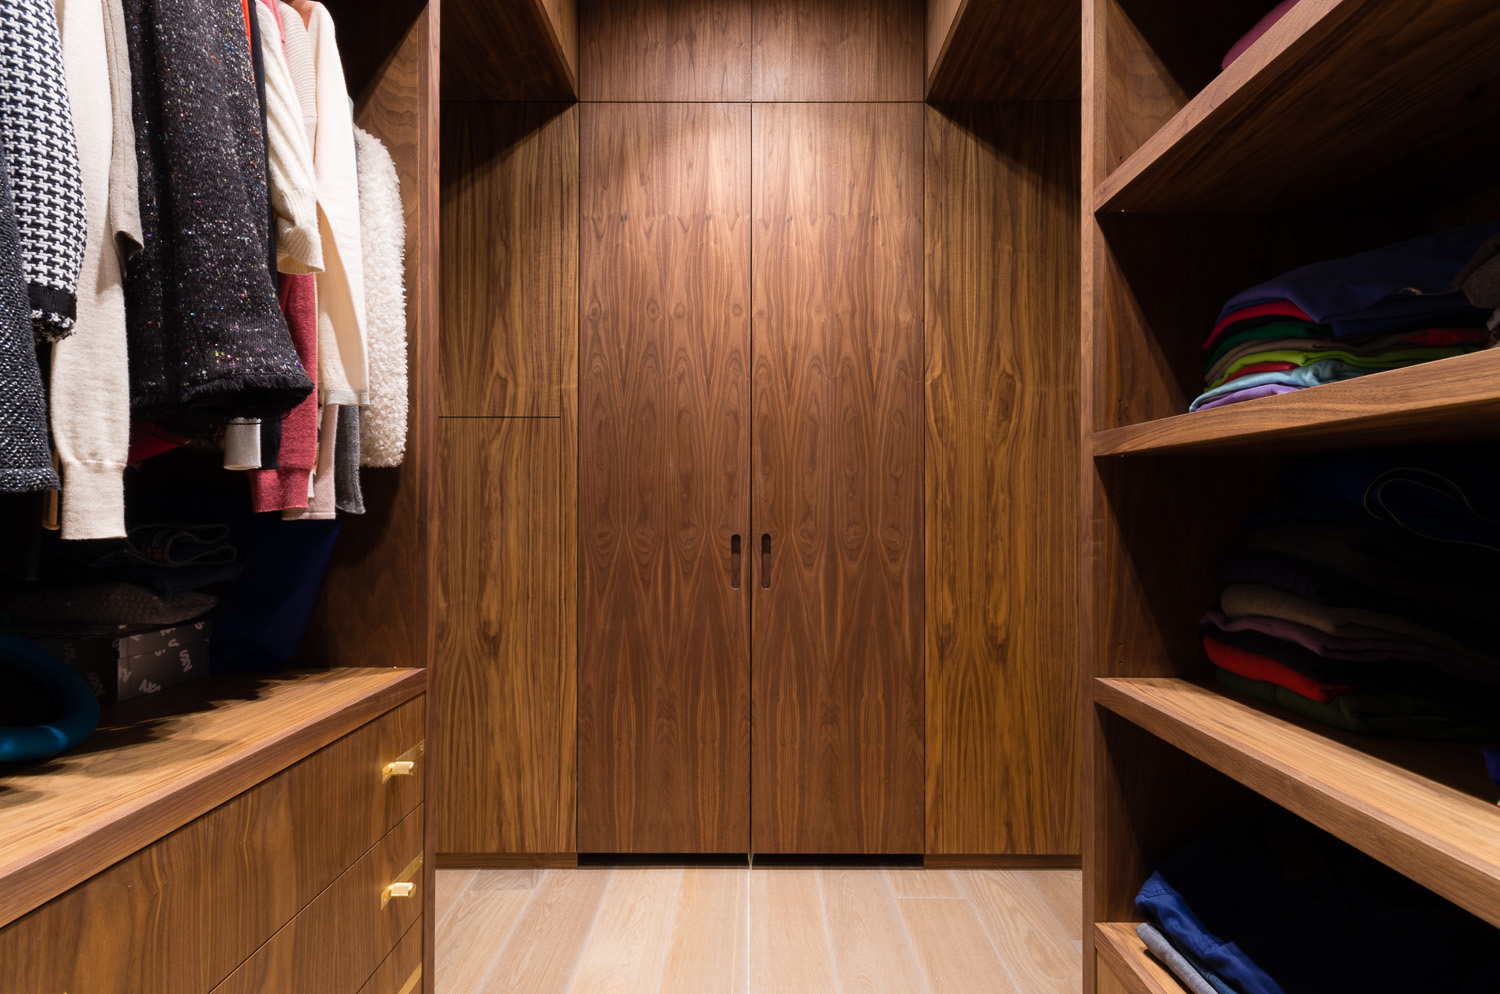 Bespoke walk in wardrobe - Warwick avenue dressing room walnut veneered doors